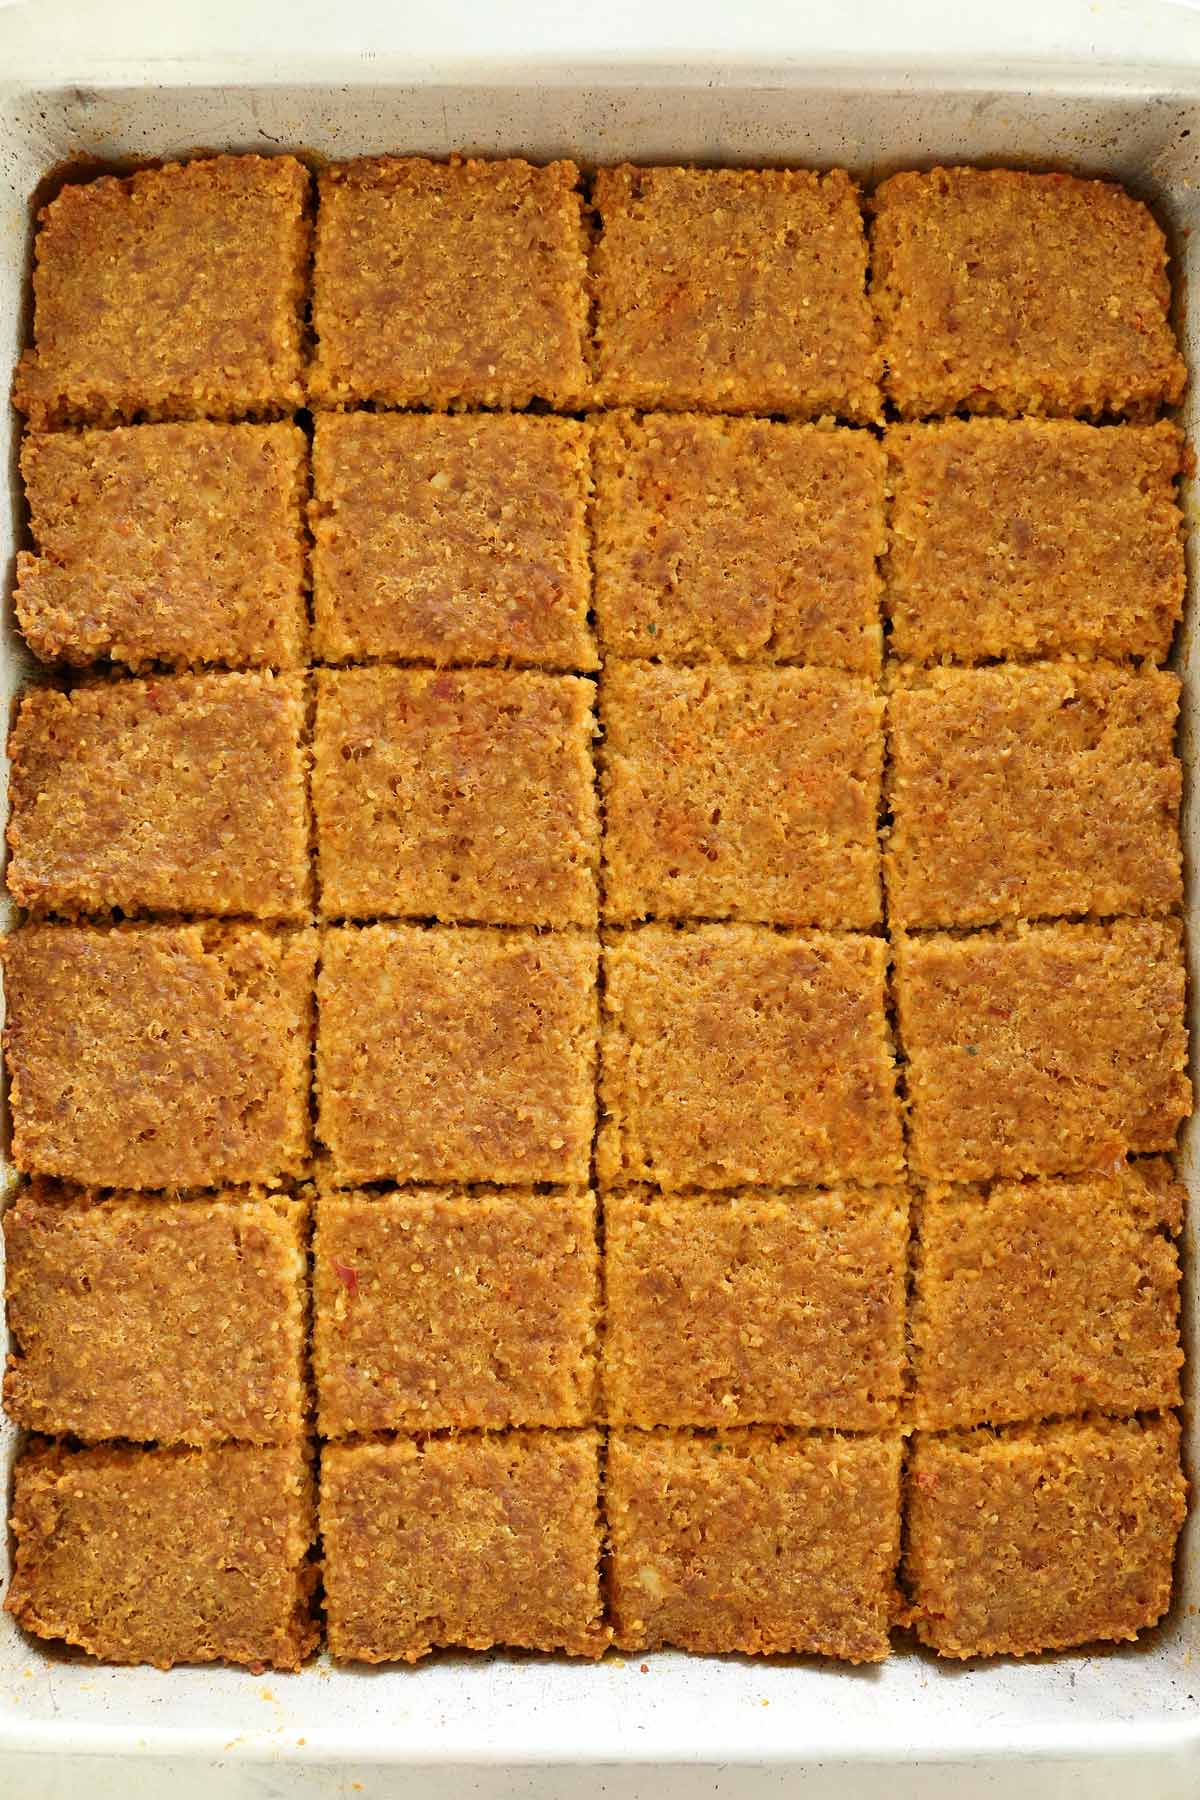 A pan of baked sini kofte cut into squares.